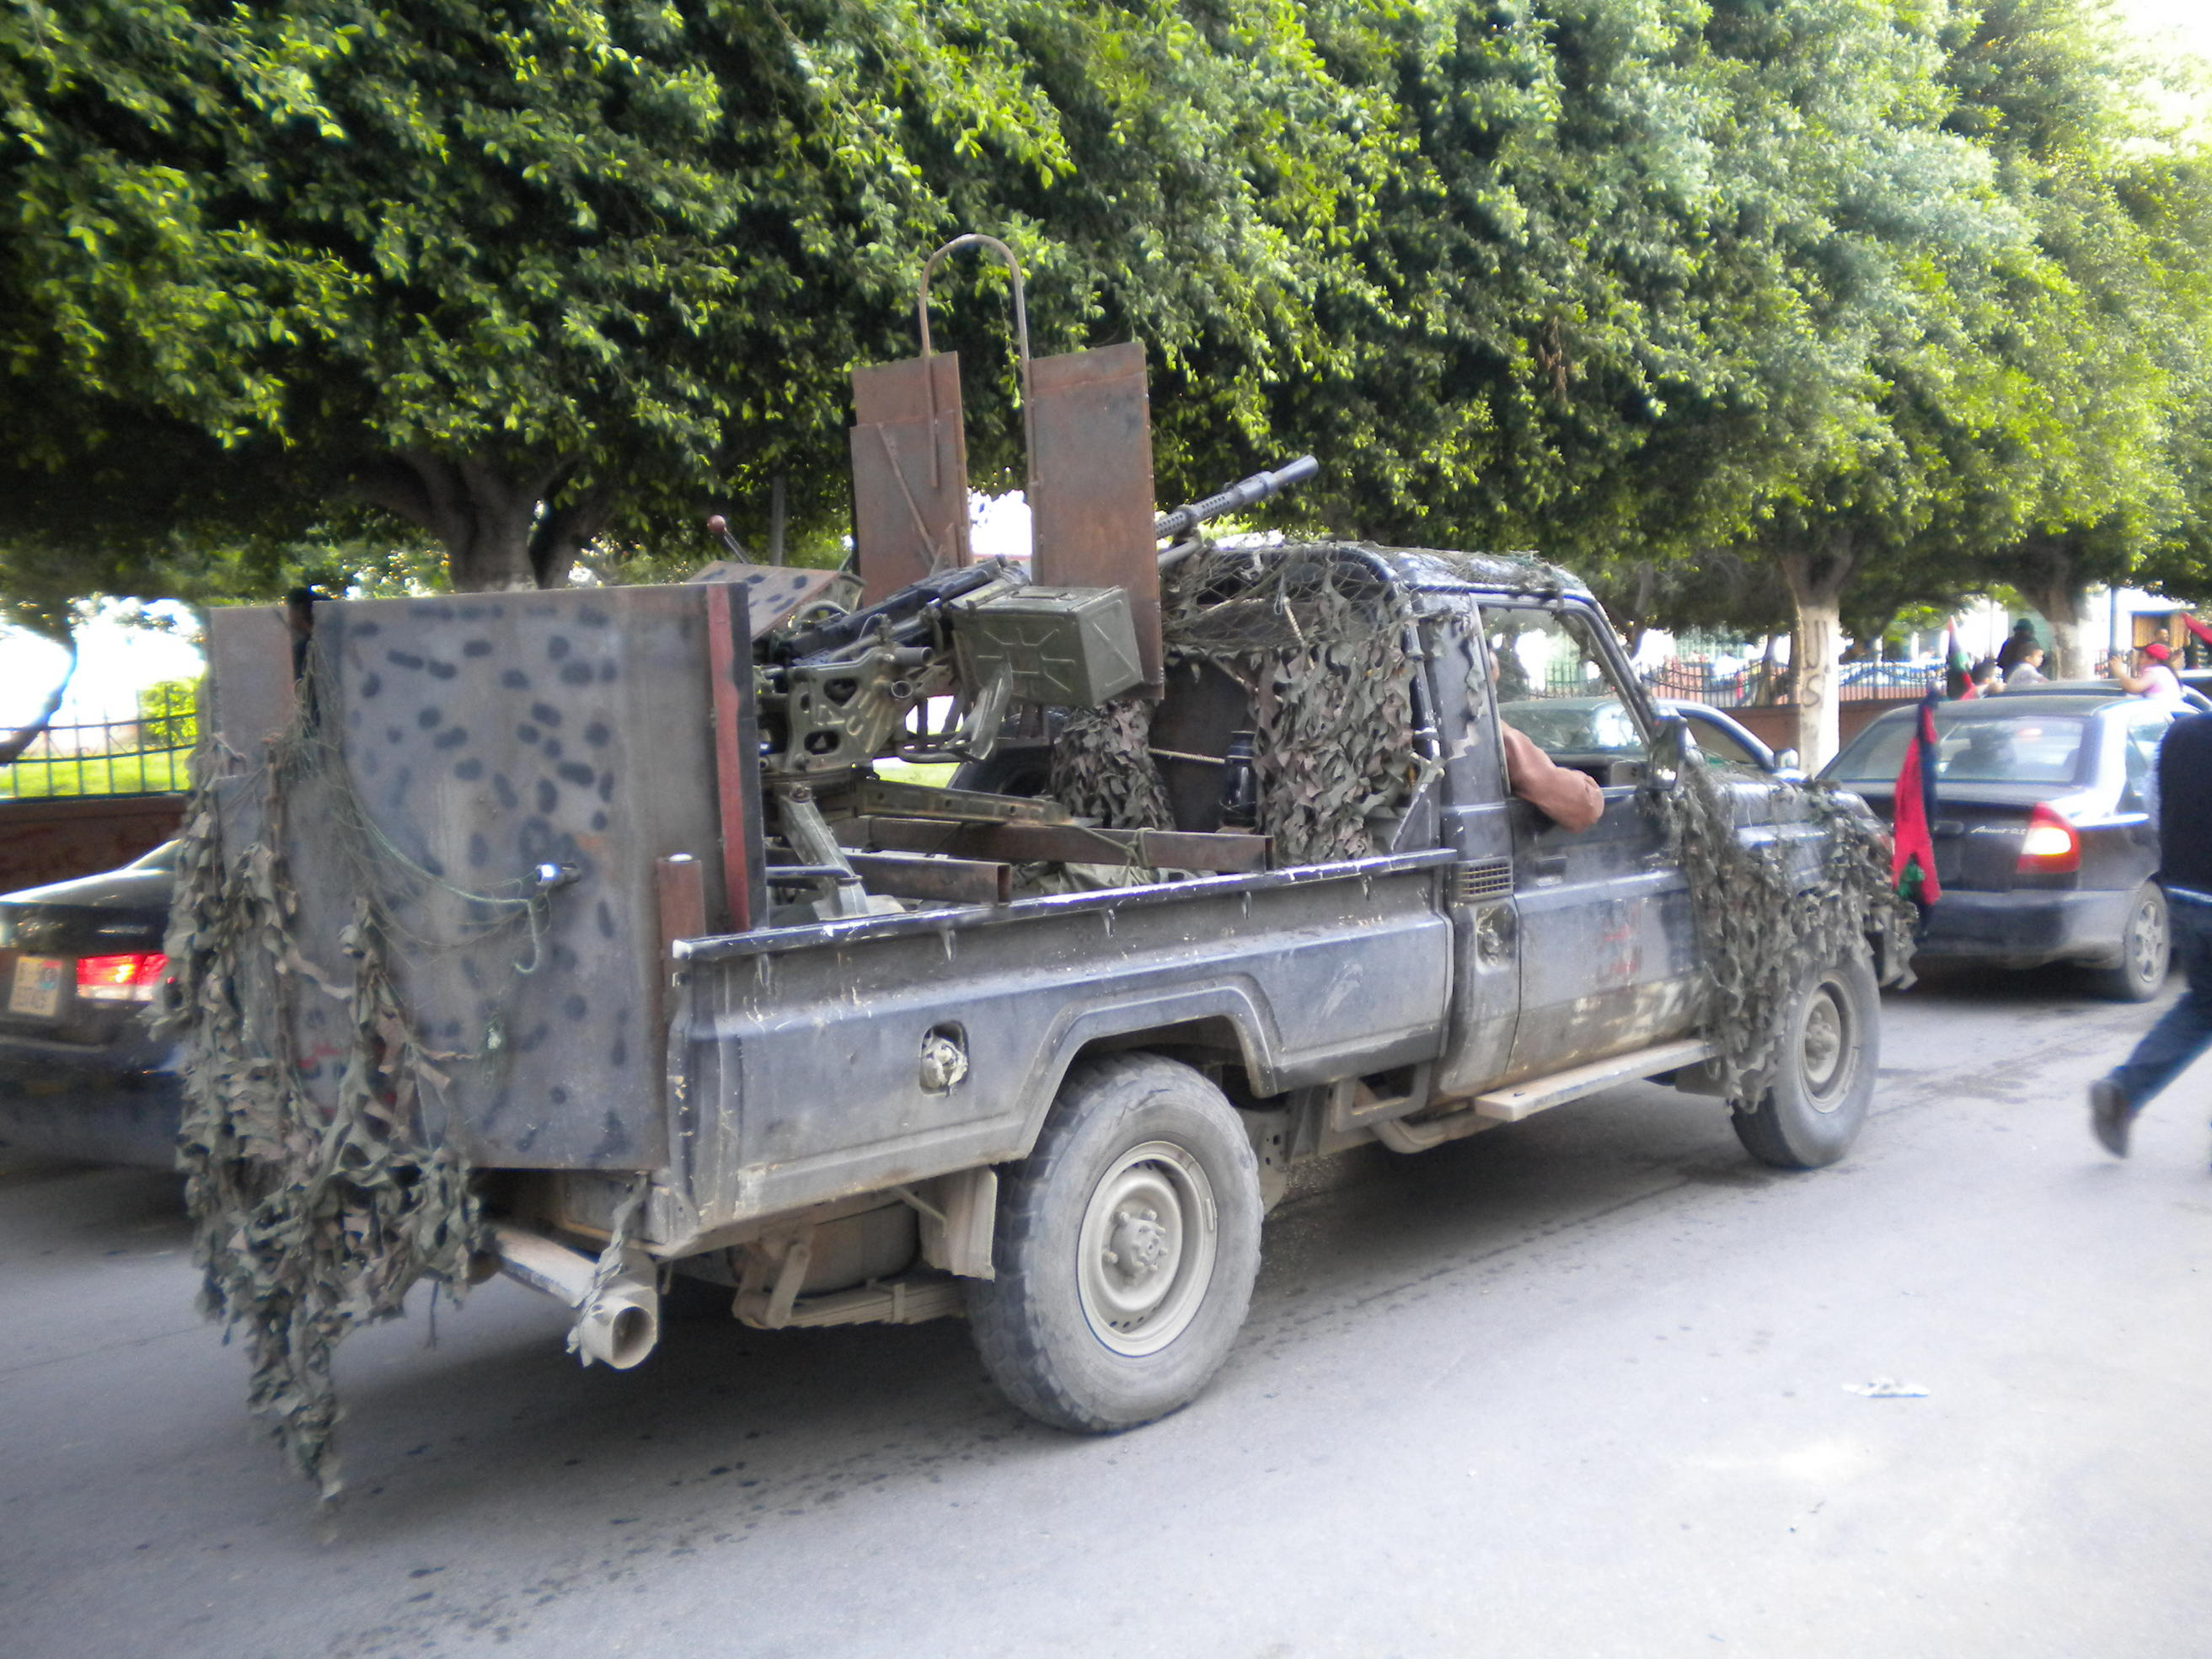 A 4x4 fitted with armour plates and heavy artillery